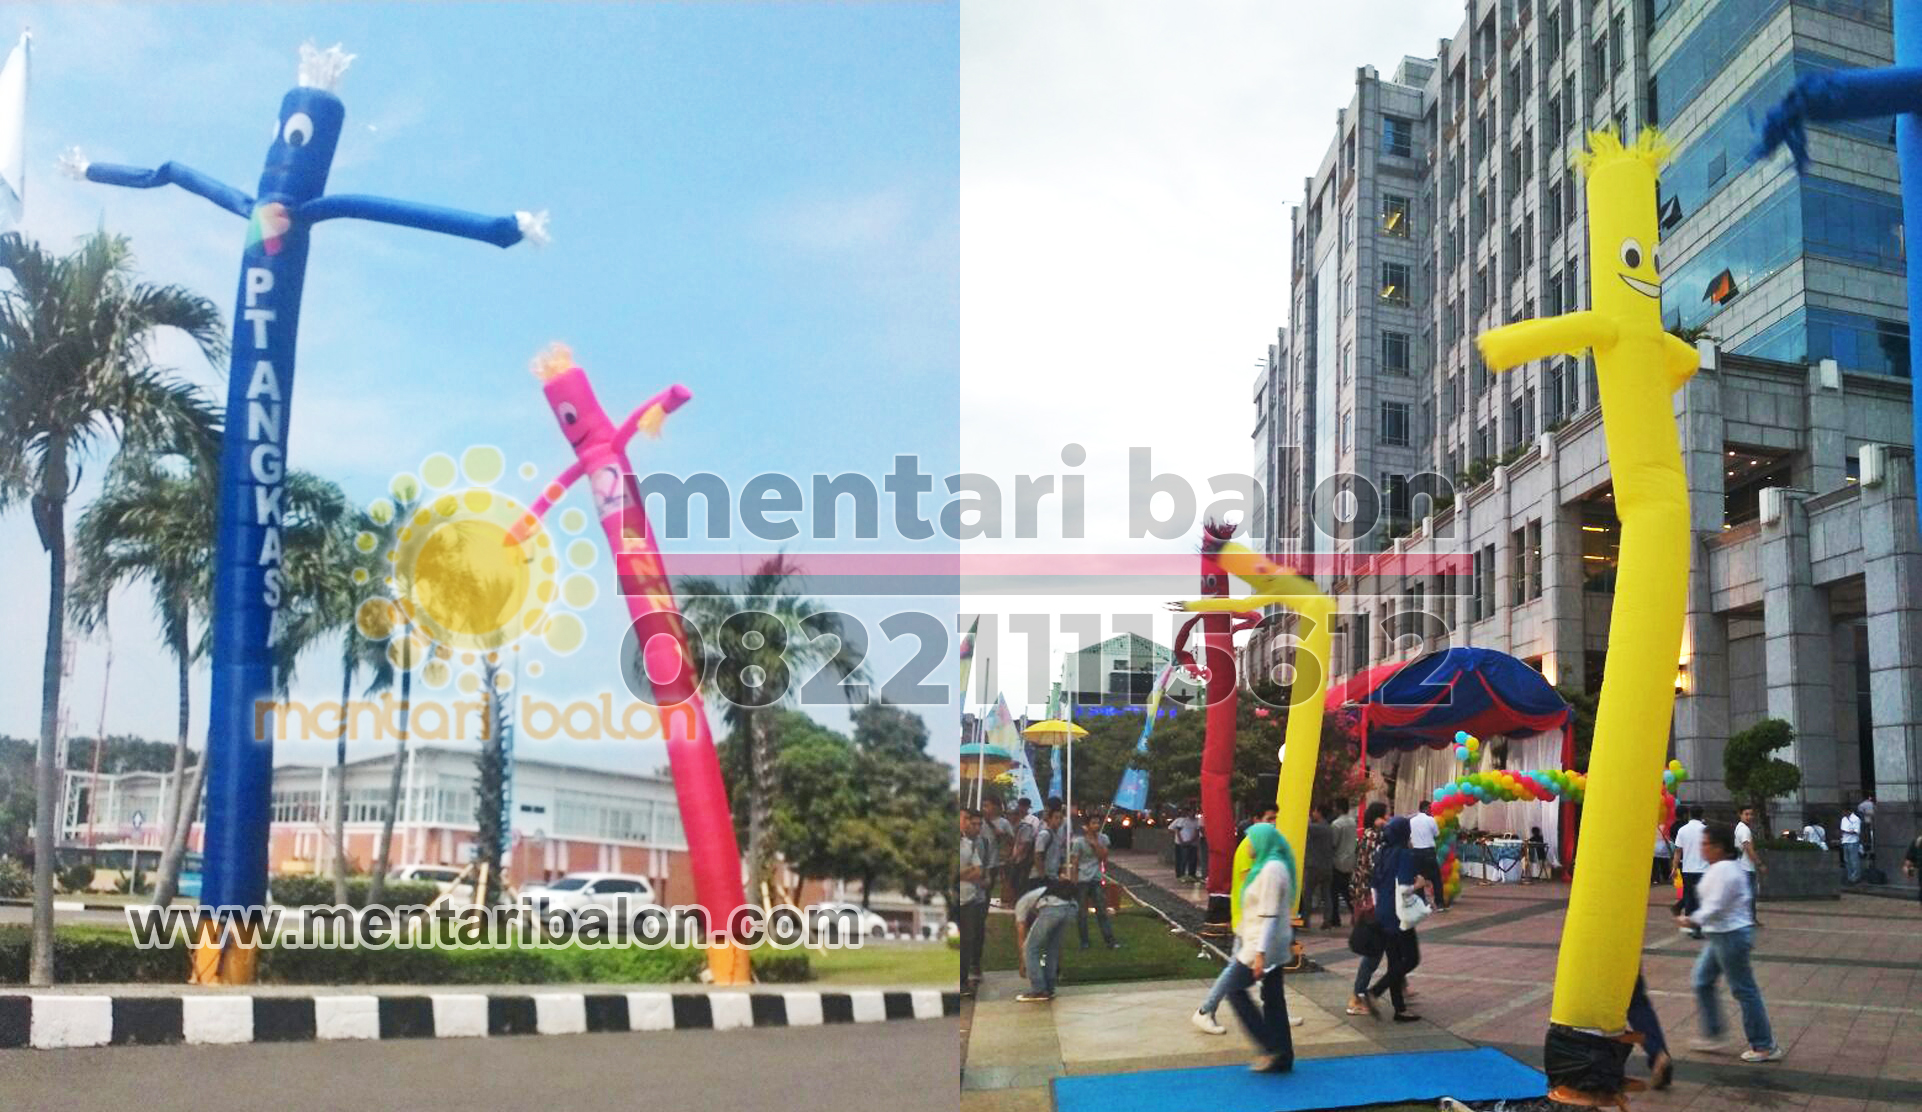 rental balon dancer